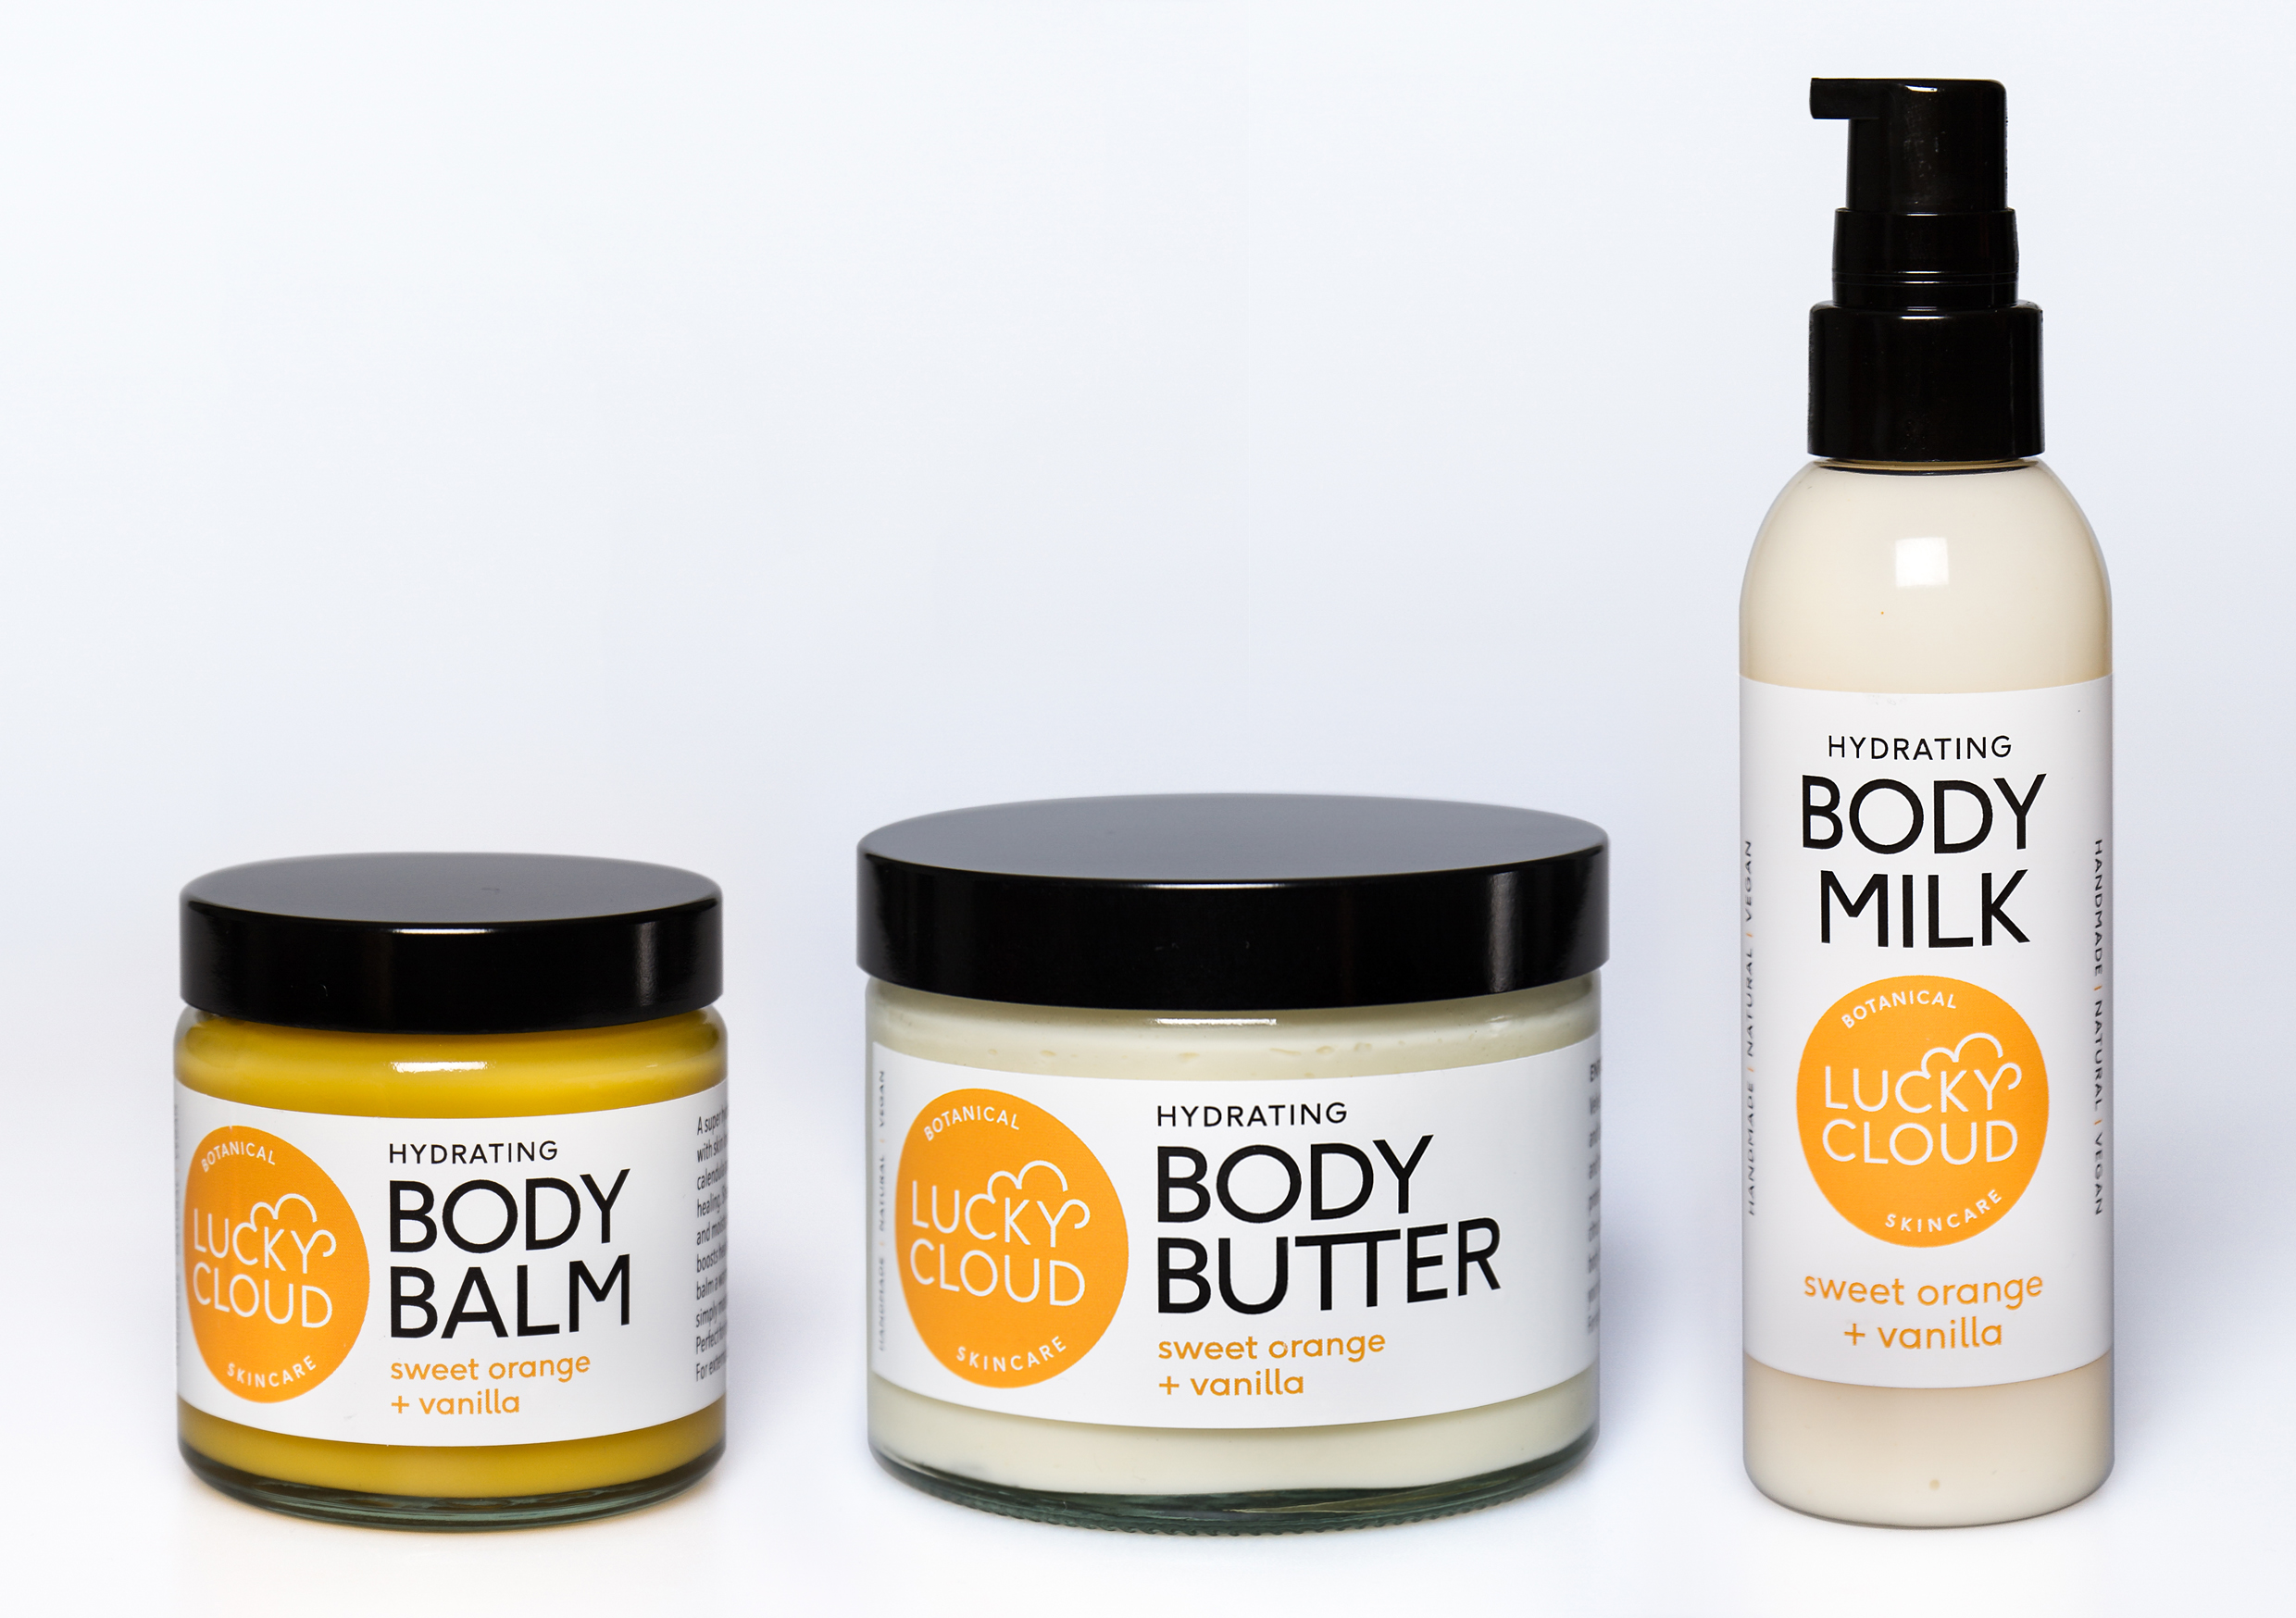 Sweet Orange & Vanilla Body Care - infused with Calendual Oil & Extract